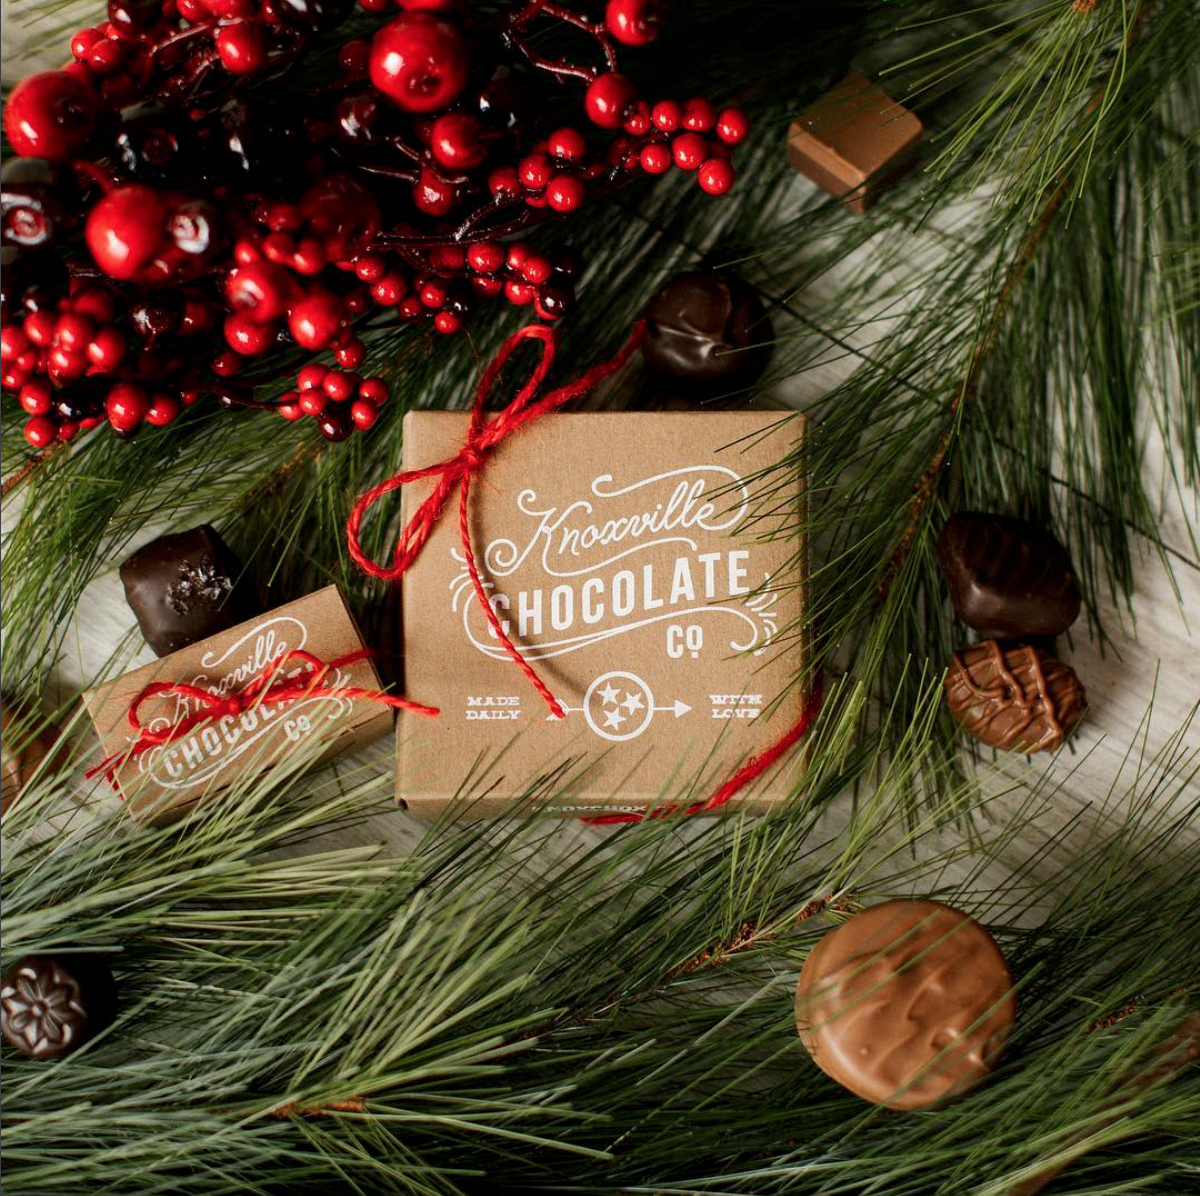 Knoxville Chocolate Co • Sunsphere Bar • $4.95